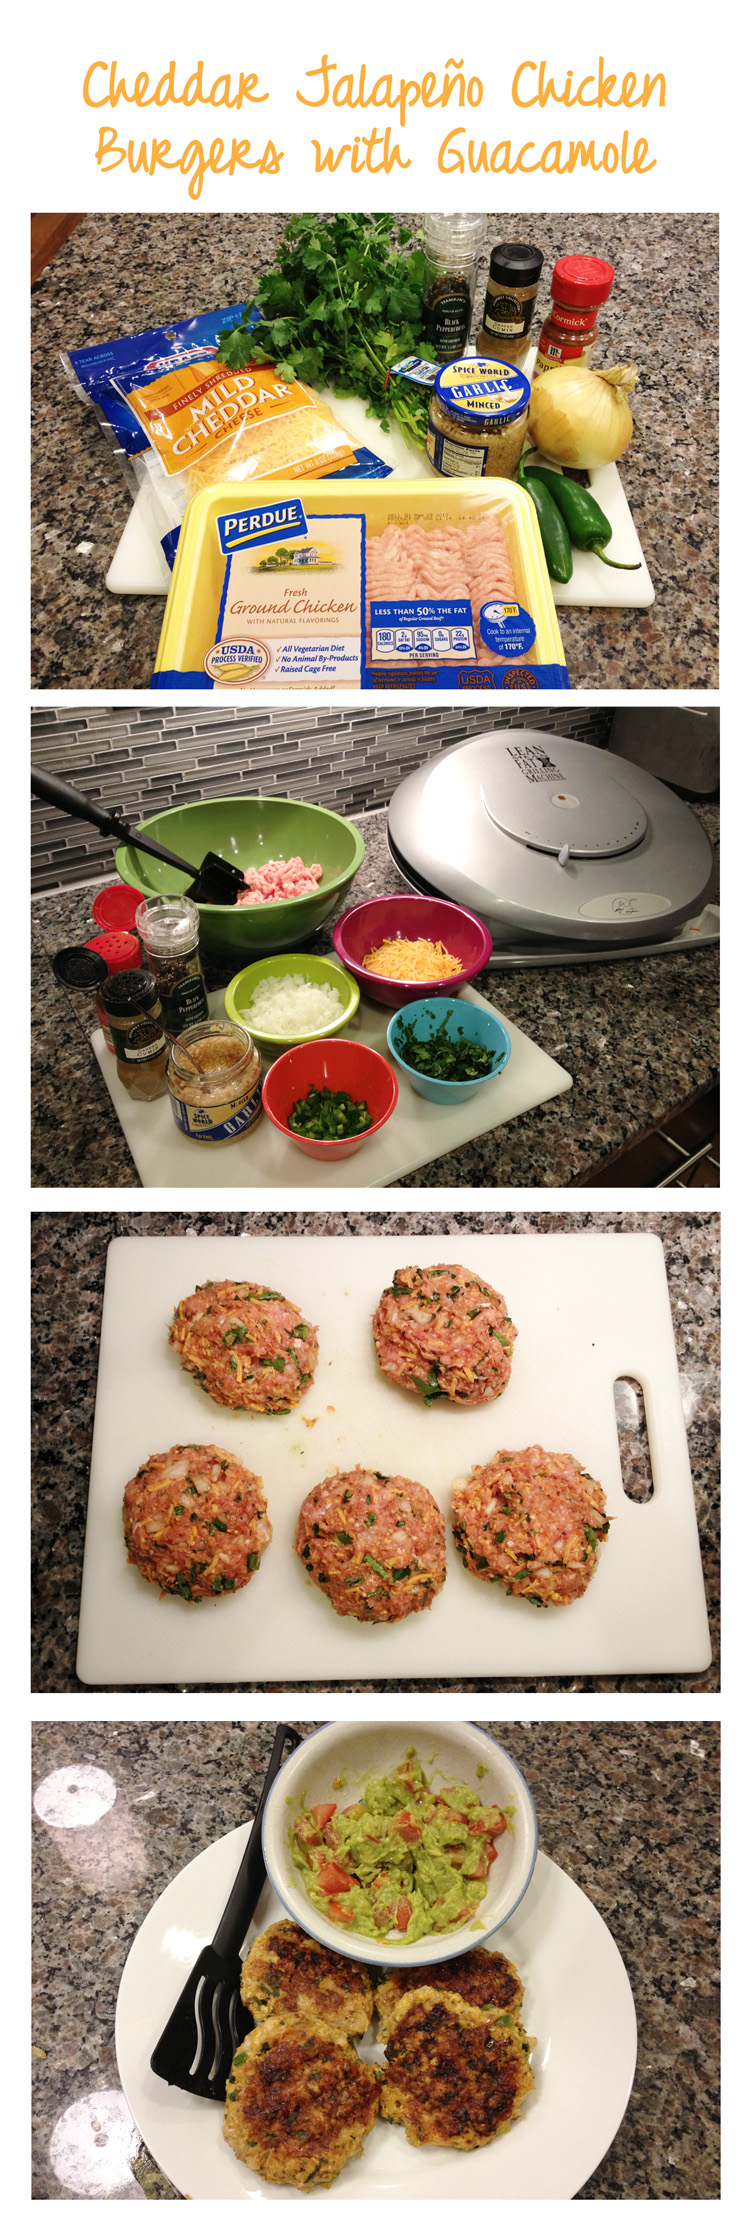 Cheddar Jalapeno Chicken Burger Recipe